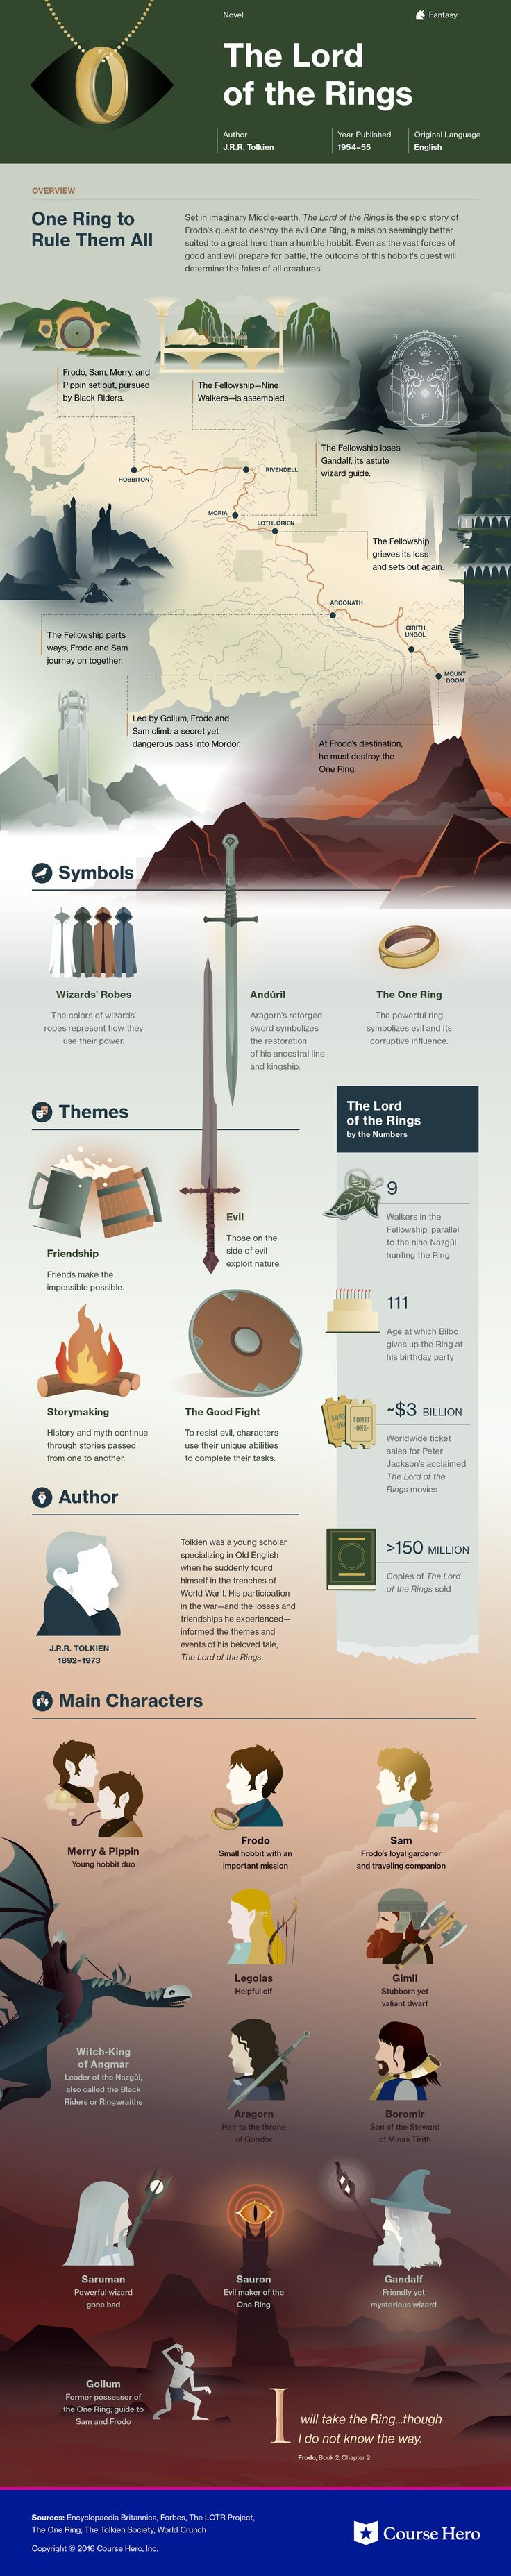 The Lord of the Rings Infographic | Course Hero